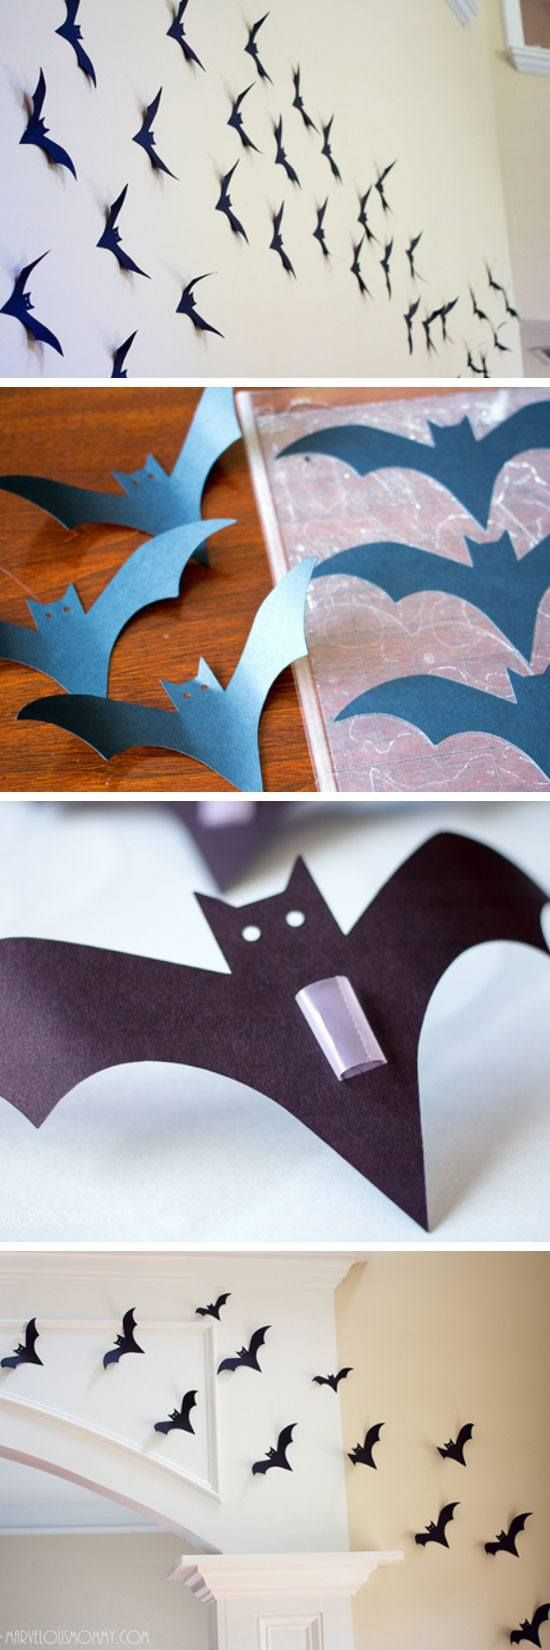 Uncategorized Decoration For Halloween Ideas best 25 halloween decorating ideas on pinterest diy for kids a budget